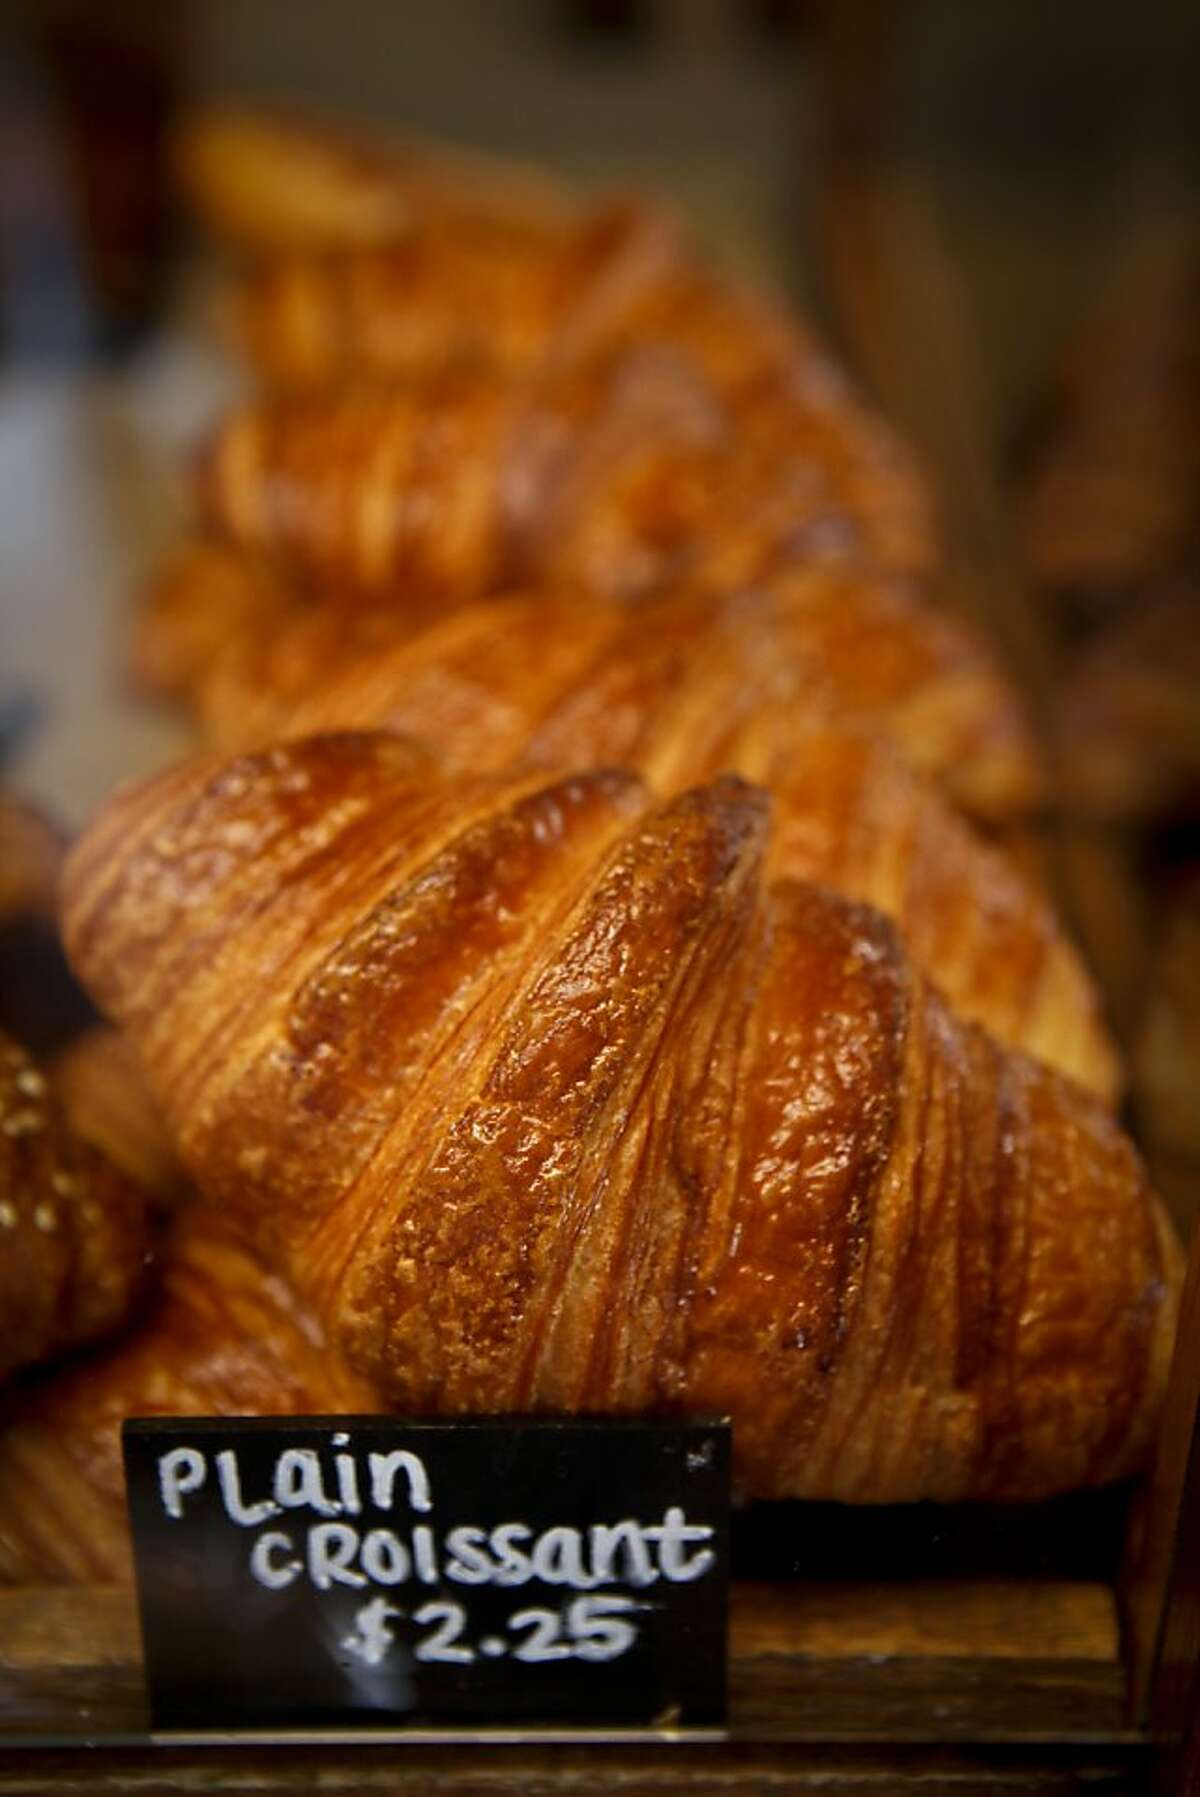 One of Valerie Orsoni's favorite things at La Boulange in Noe Valley is the plain croissant which is seen on Tuesday, Sep. 13, 2011 in San Francisco, Calif.